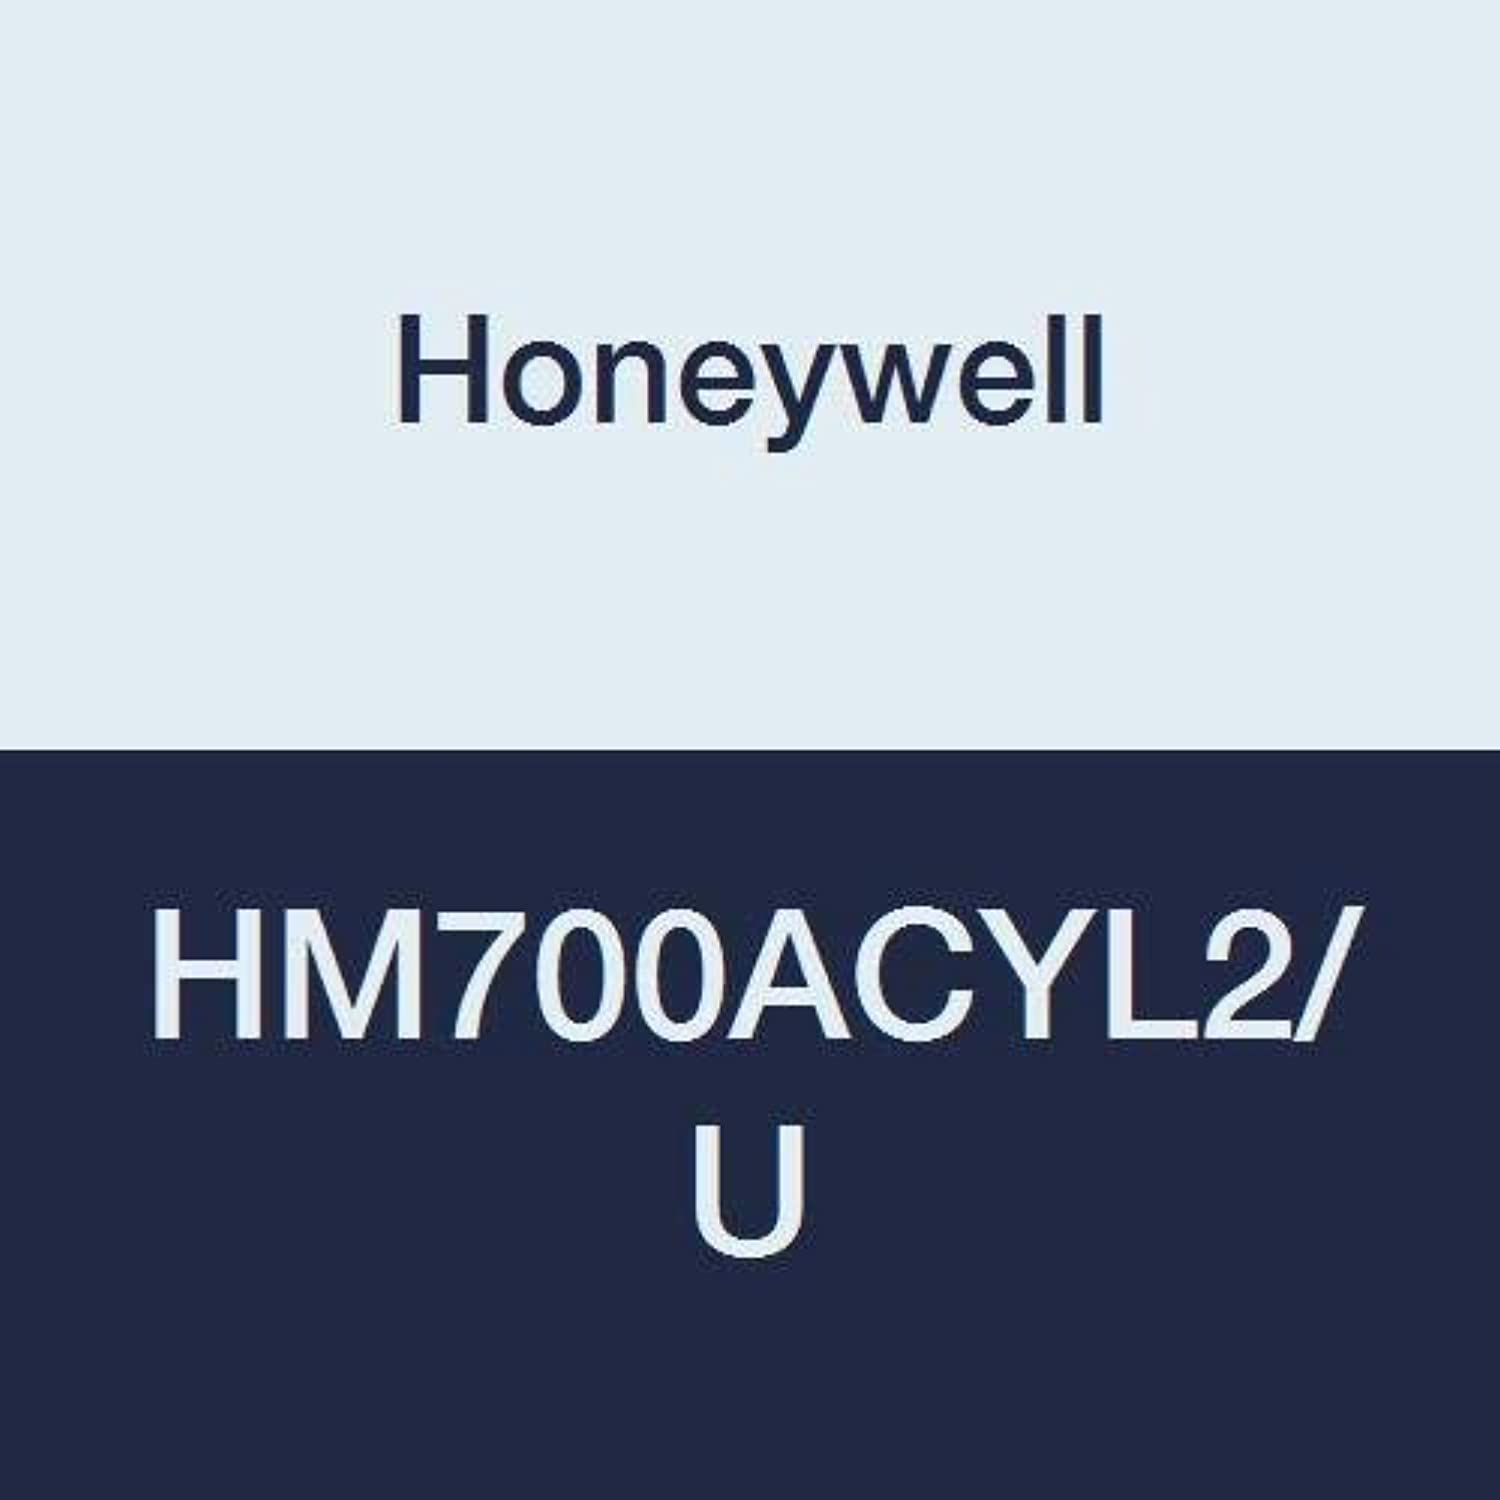 Honeywell HM700ACYL2 U Replacement Cylinder for Hm700 Electrode Humidifier